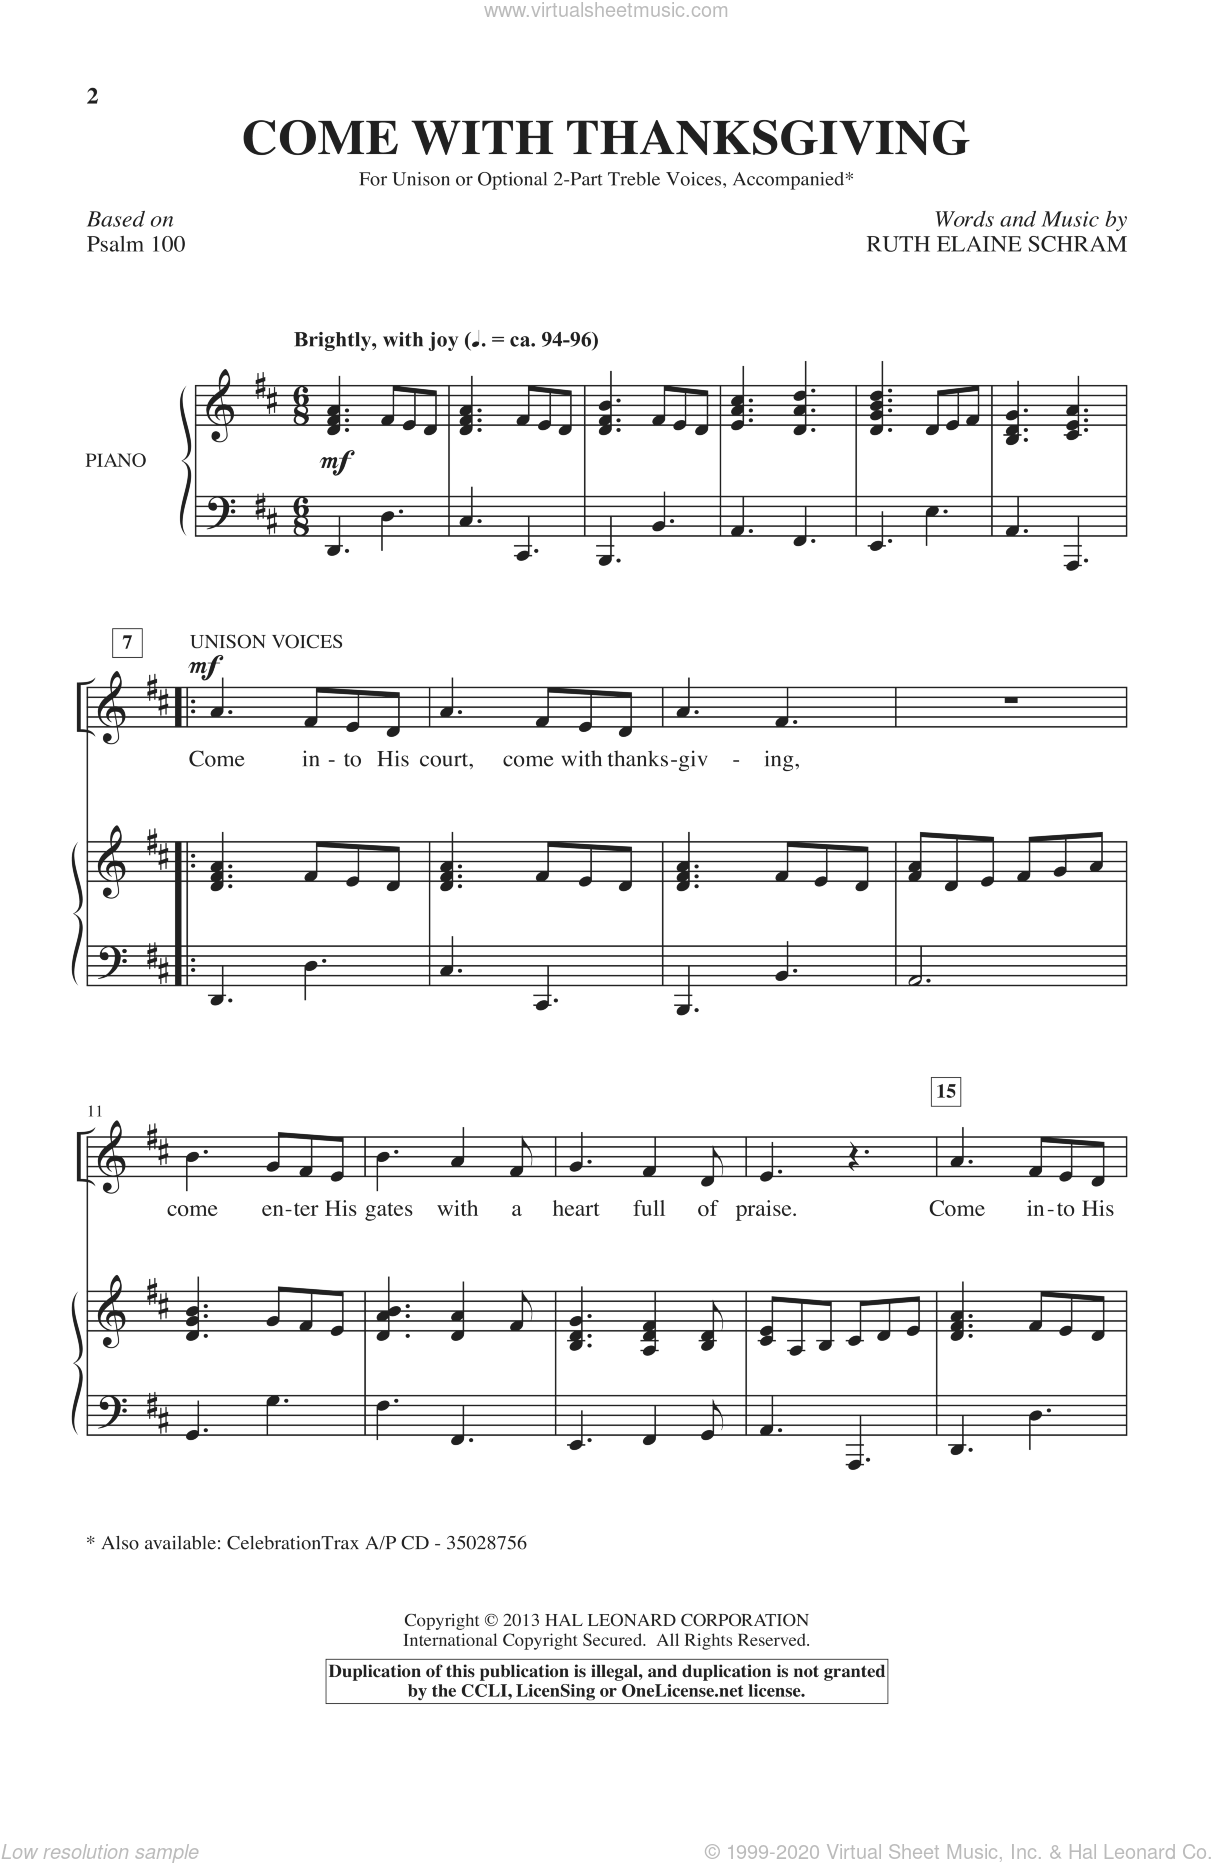 Come With Thanksgiving sheet music for choir and piano by Ruth Elaine Schram